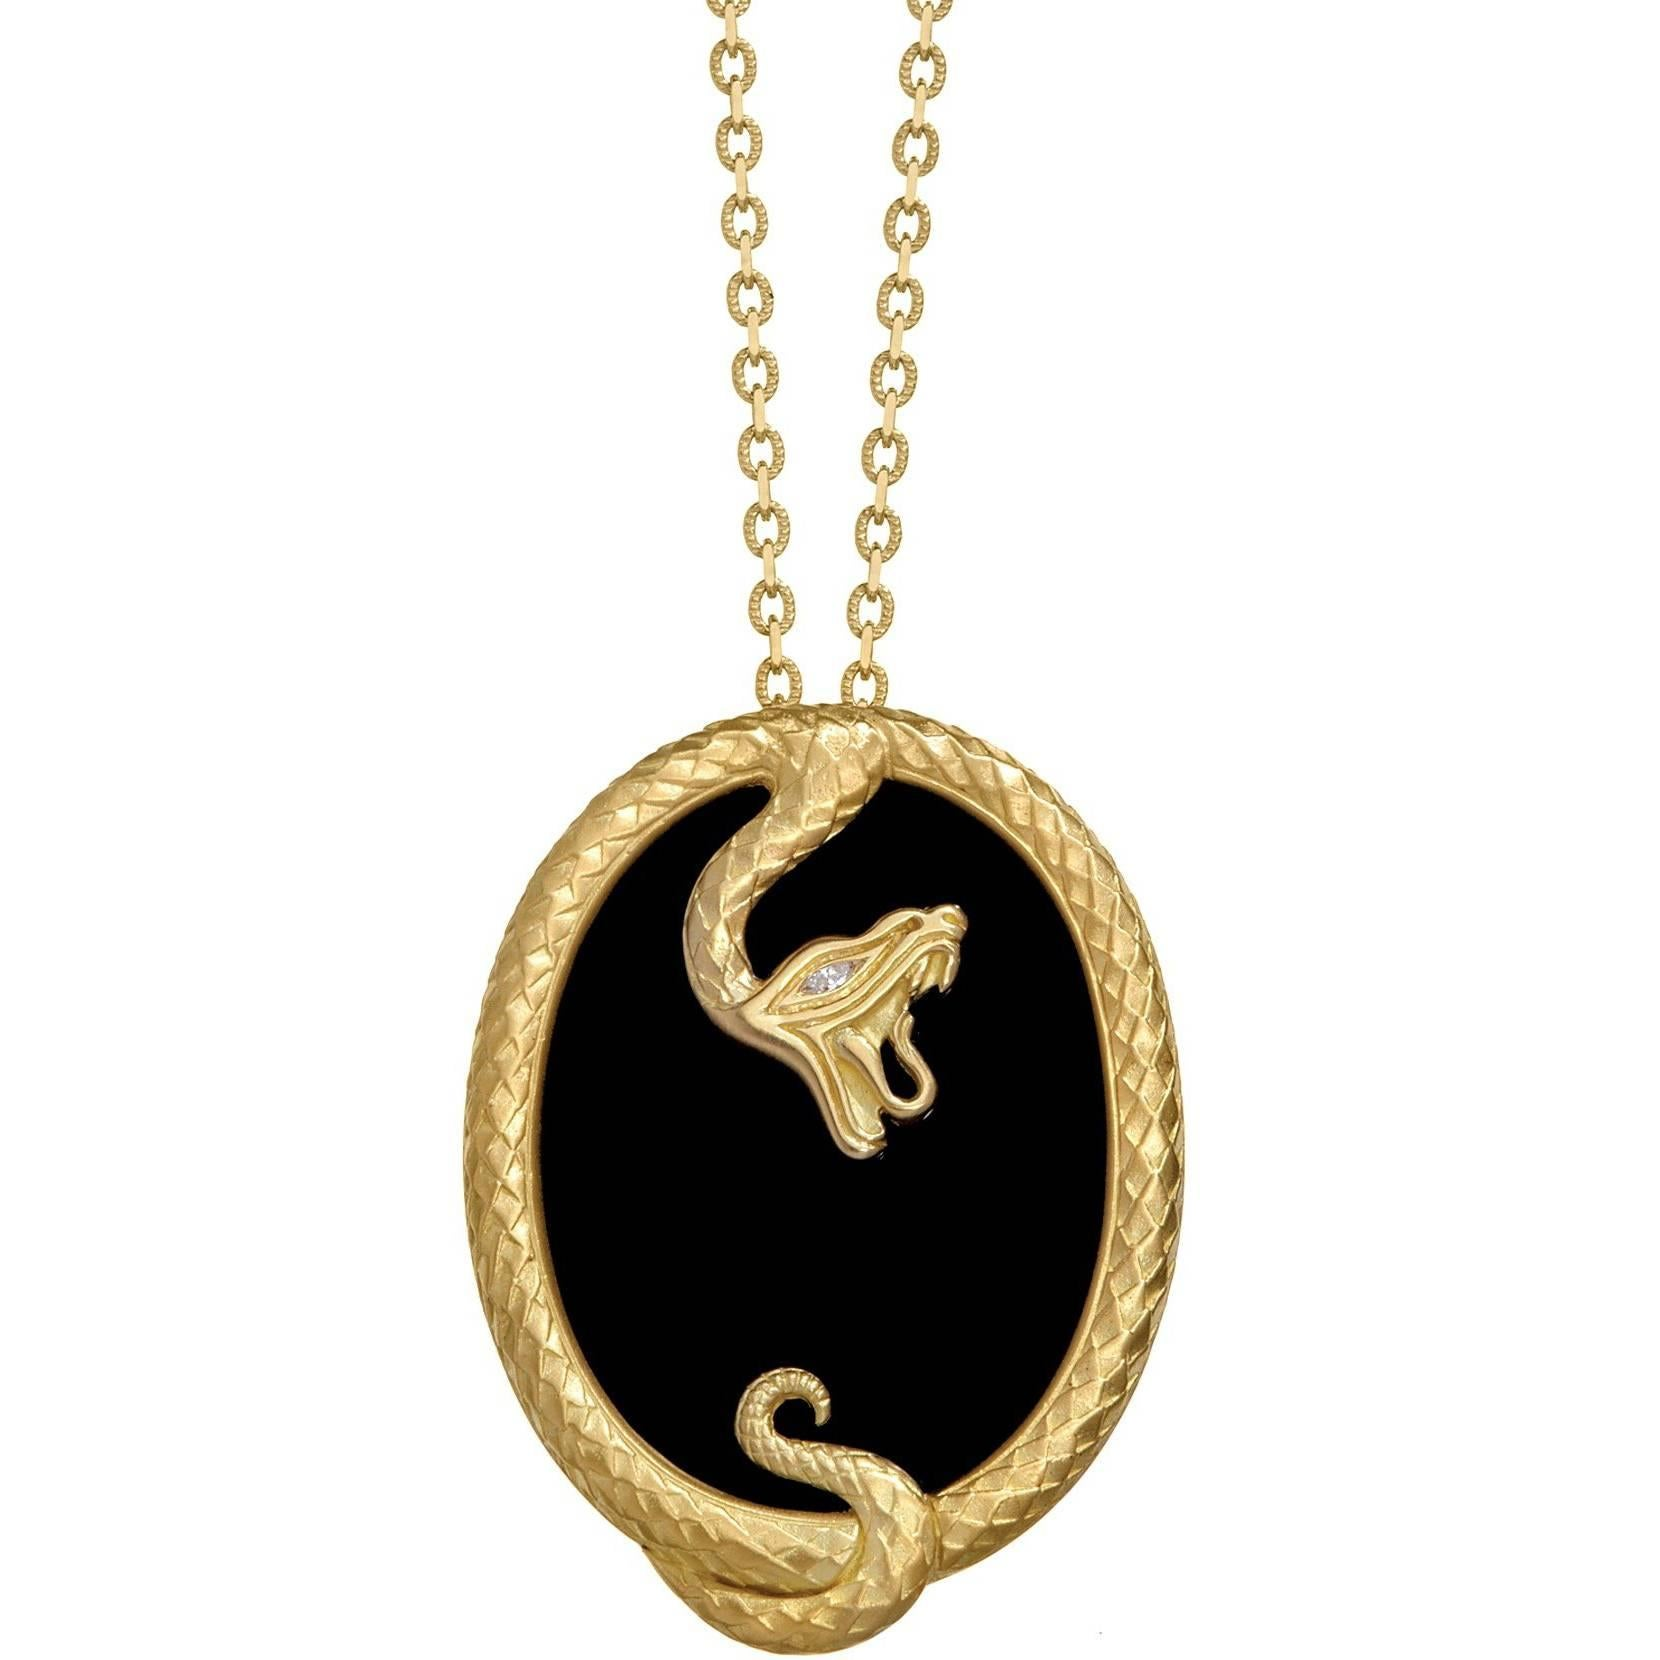 Wendy Brandes Onyx and Yellow Gold Snake Pendant Necklace